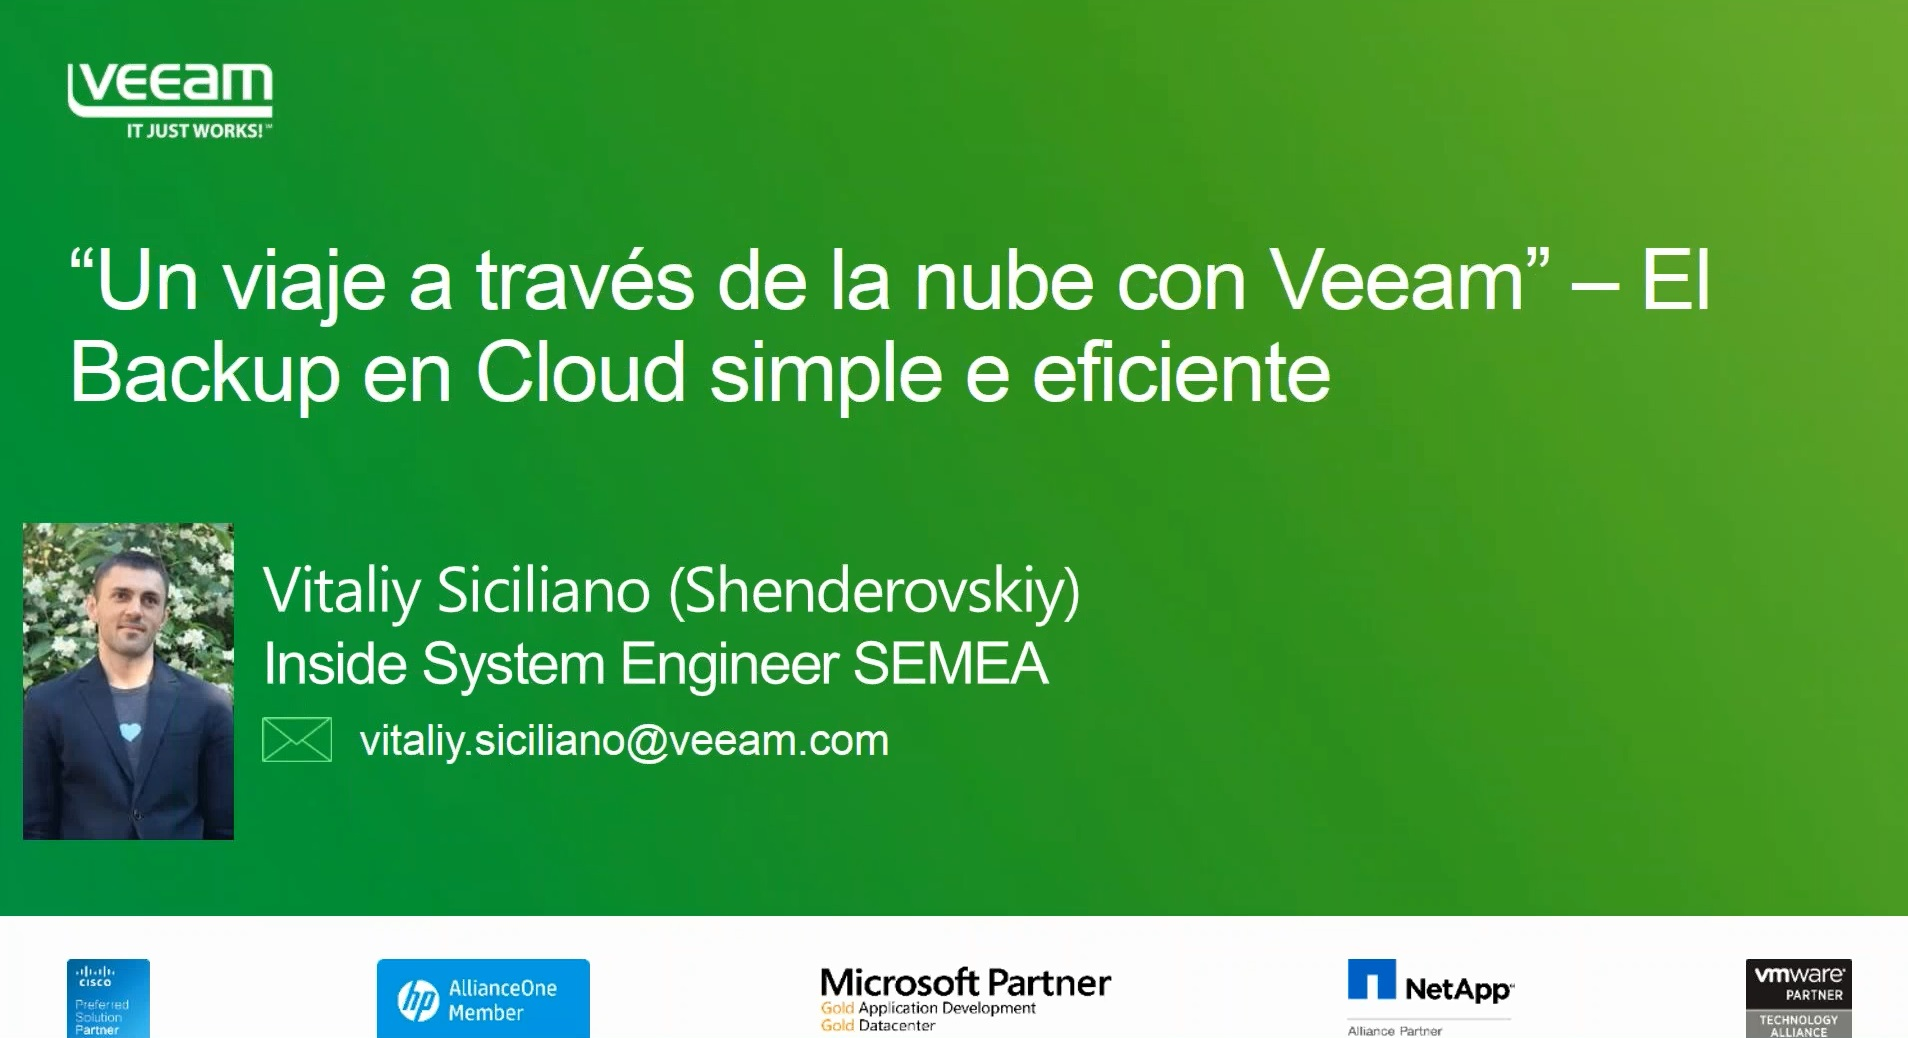 """Un viaje a través de la nube con Veeam"" – El Backup en Cloud simple y eficiente"